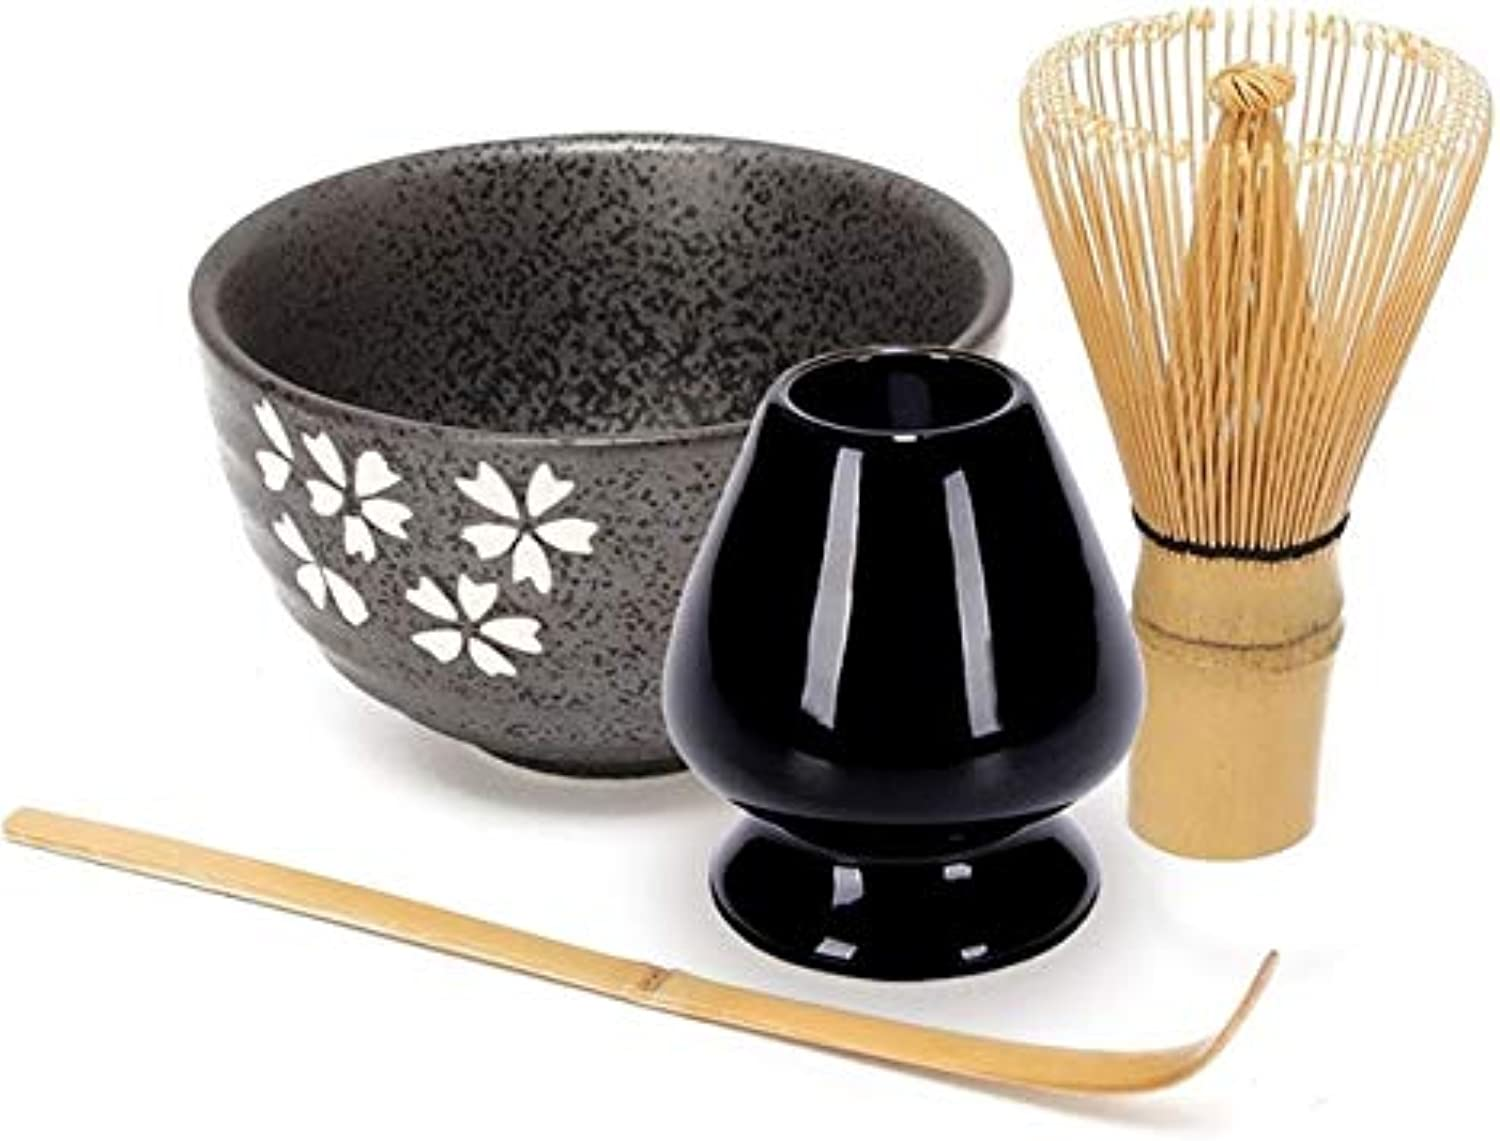 Japanese Matcha Tea Set Matcha Bowl Set Bamboo Scoop Chasen Holder Whisk Tea Ceremony Teaware Matcha Whisk Scoop Ceremic   C